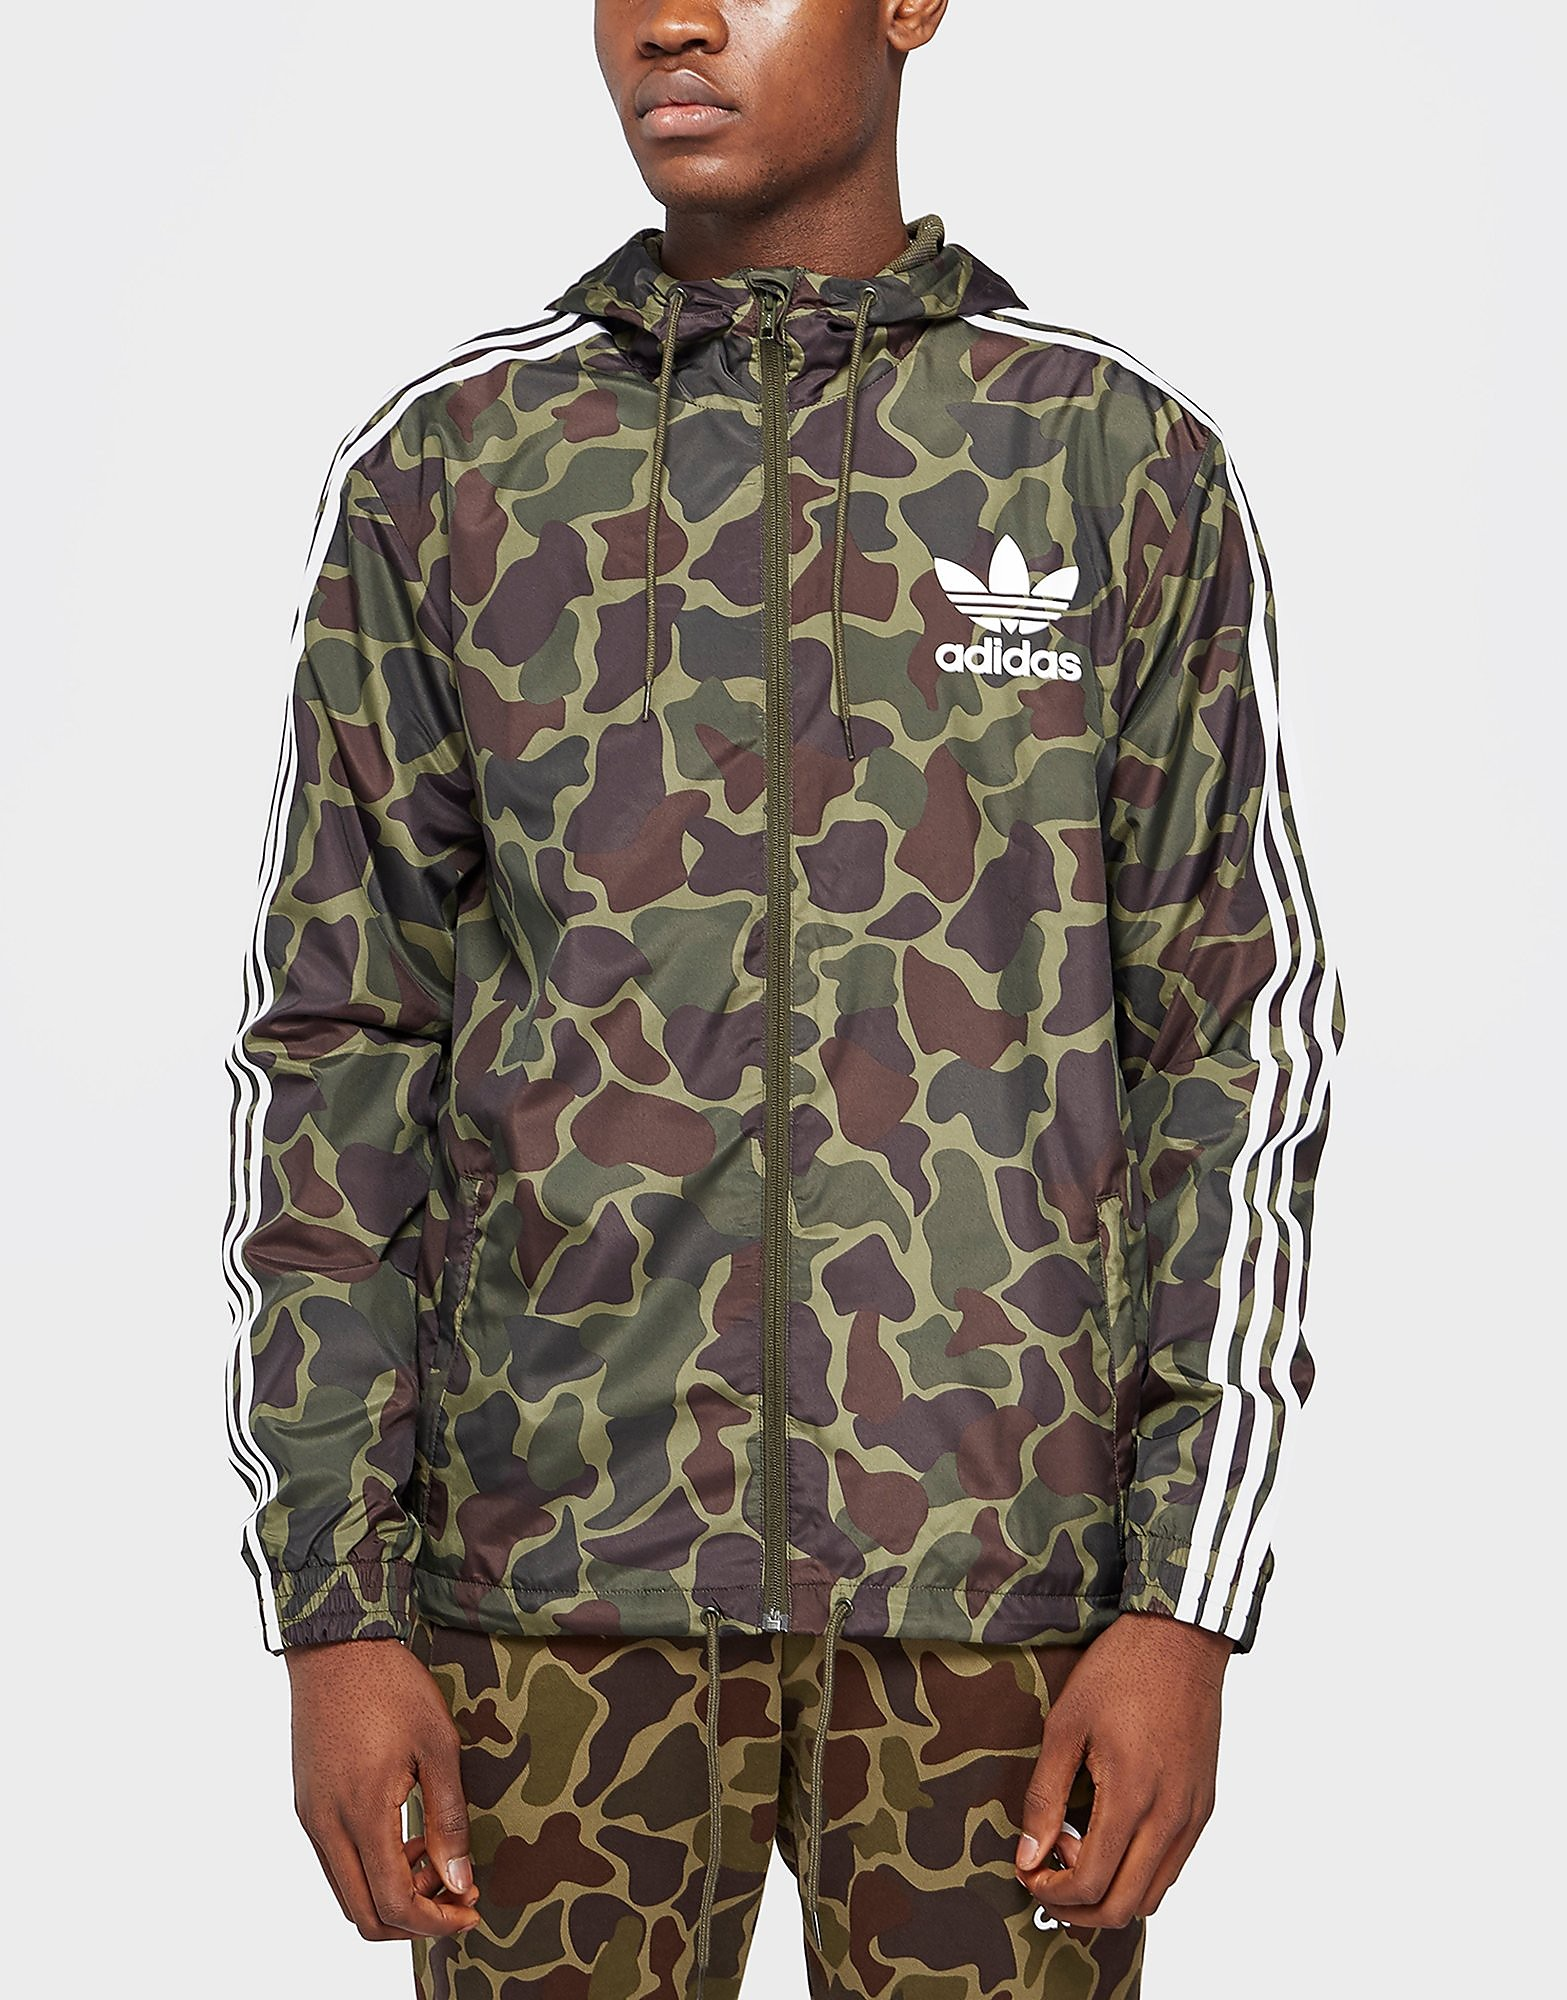 adidas Originals Trefoil All Over Print Jacket  Camouflage Camouflage